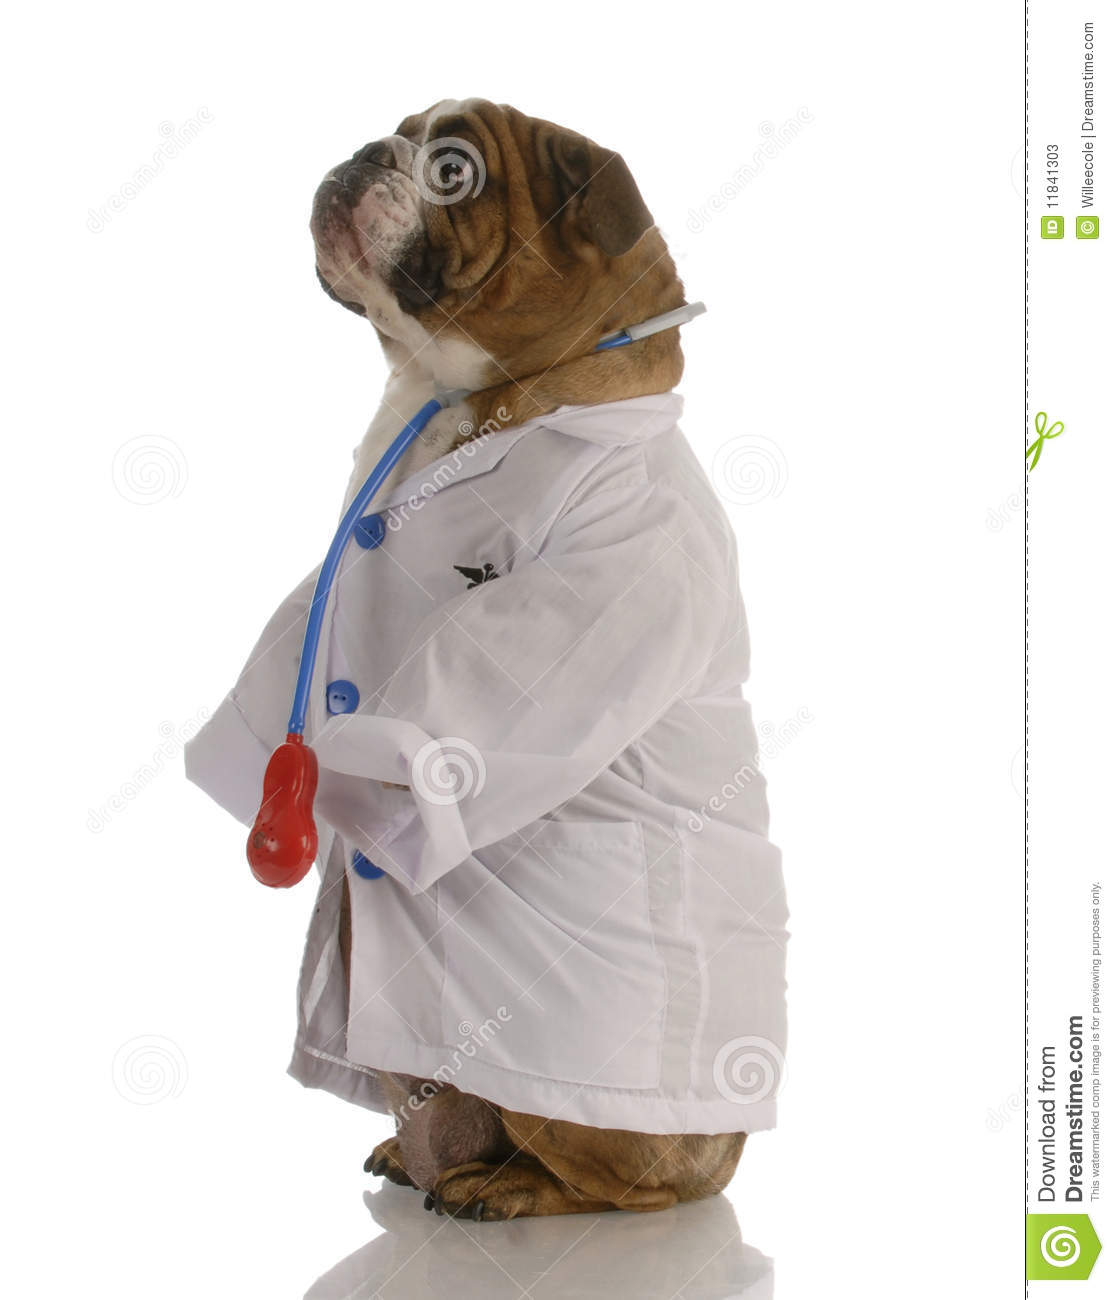 Dog Dressed Up As A Doctor Stock Photos - Image: 11841303